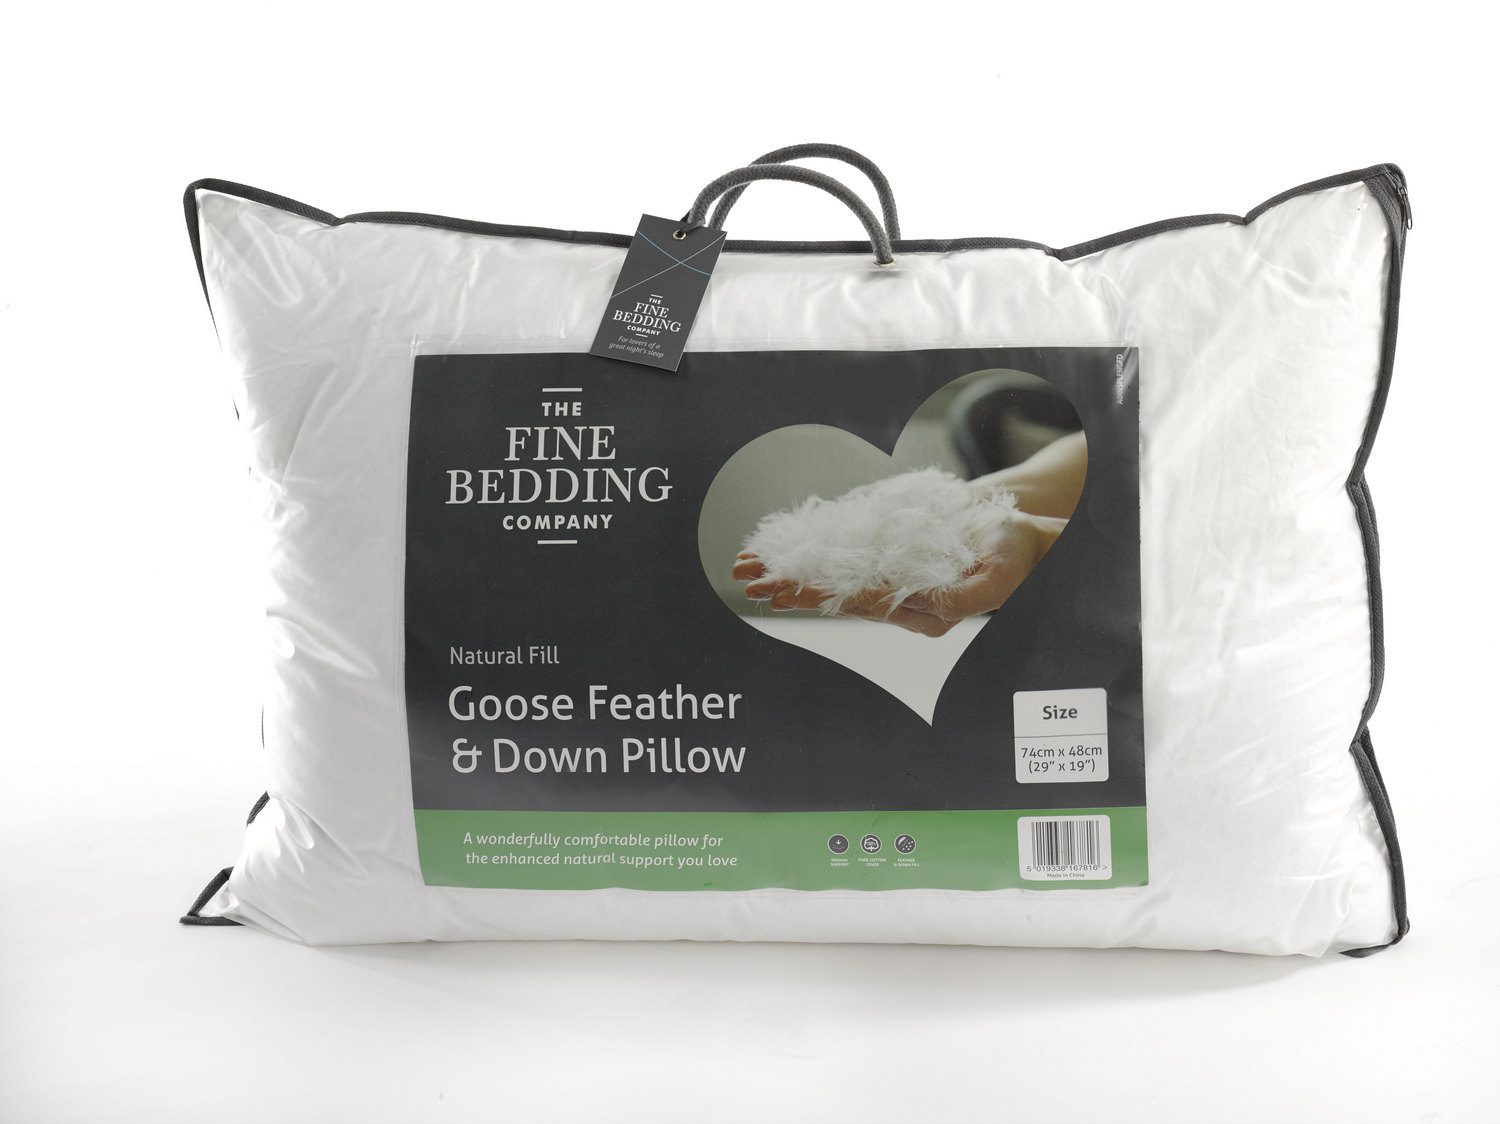 Fine Bedding Goose Feather & Down Pillow.